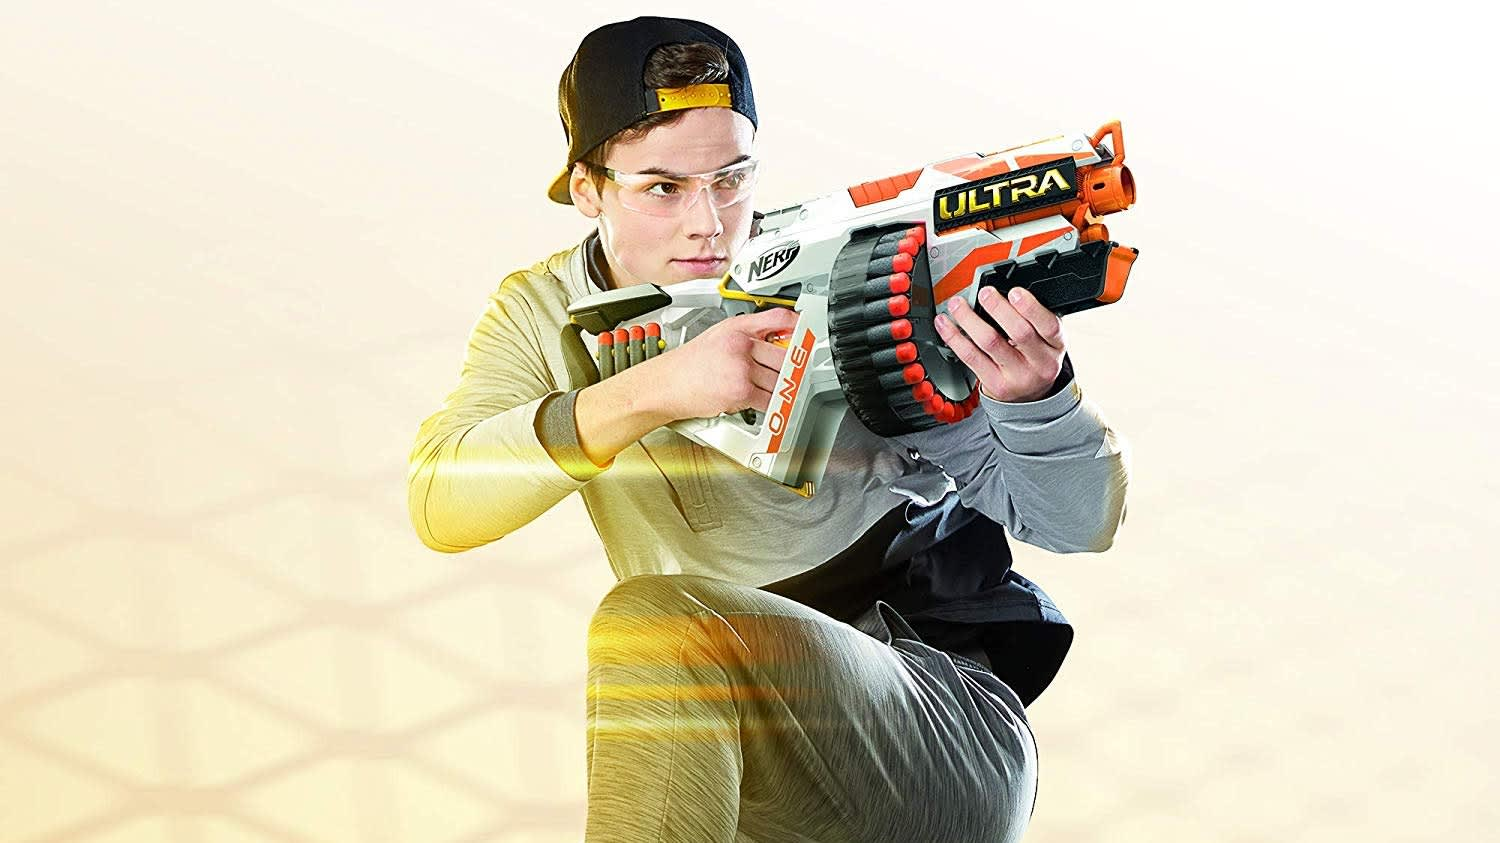 Nerf Ultra darts are the farthest flying Nerf darts ever: blast into the game-changing superiority with Nerf Ultra darts.